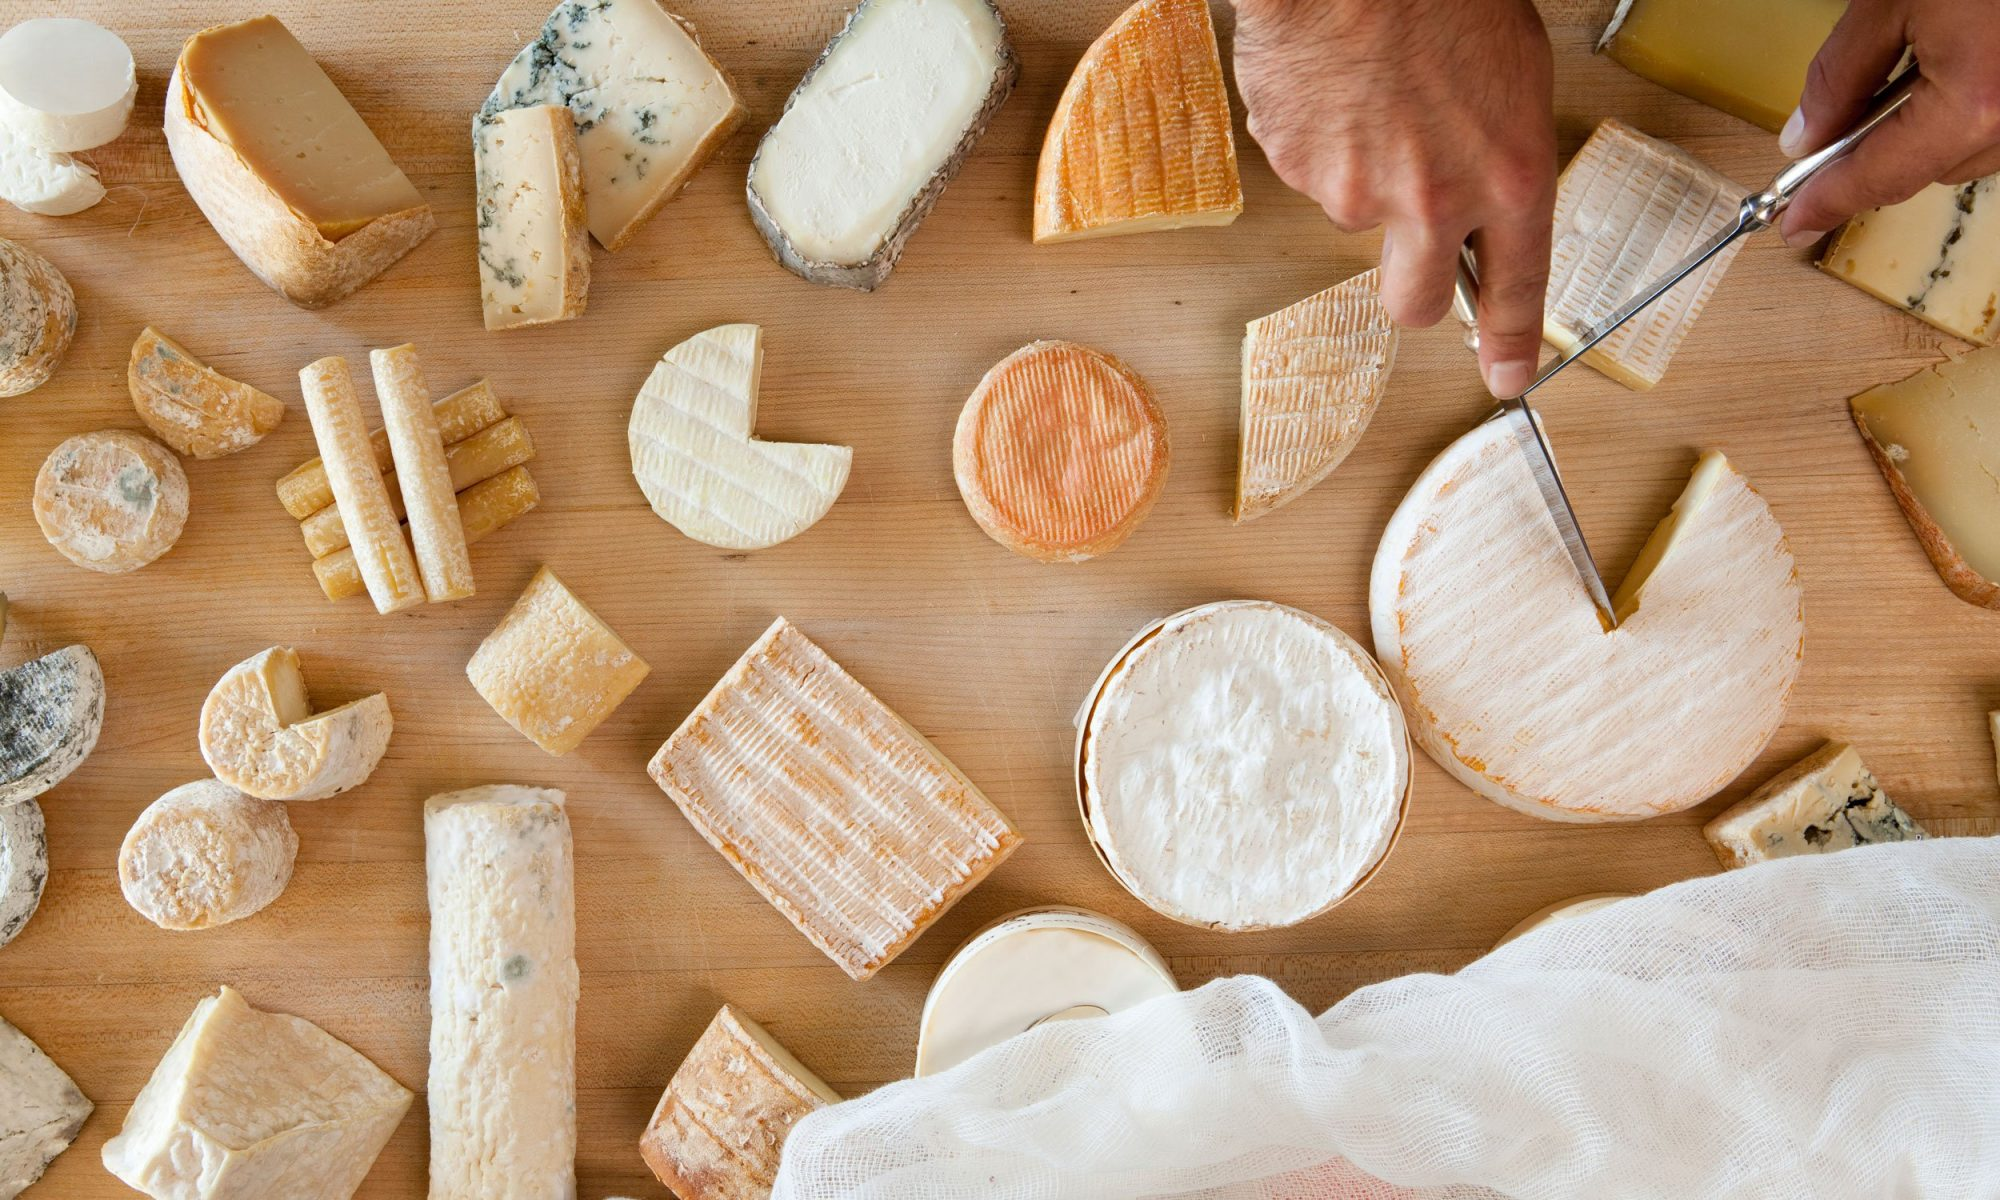 What's the Stinkiest Cheese in the World?